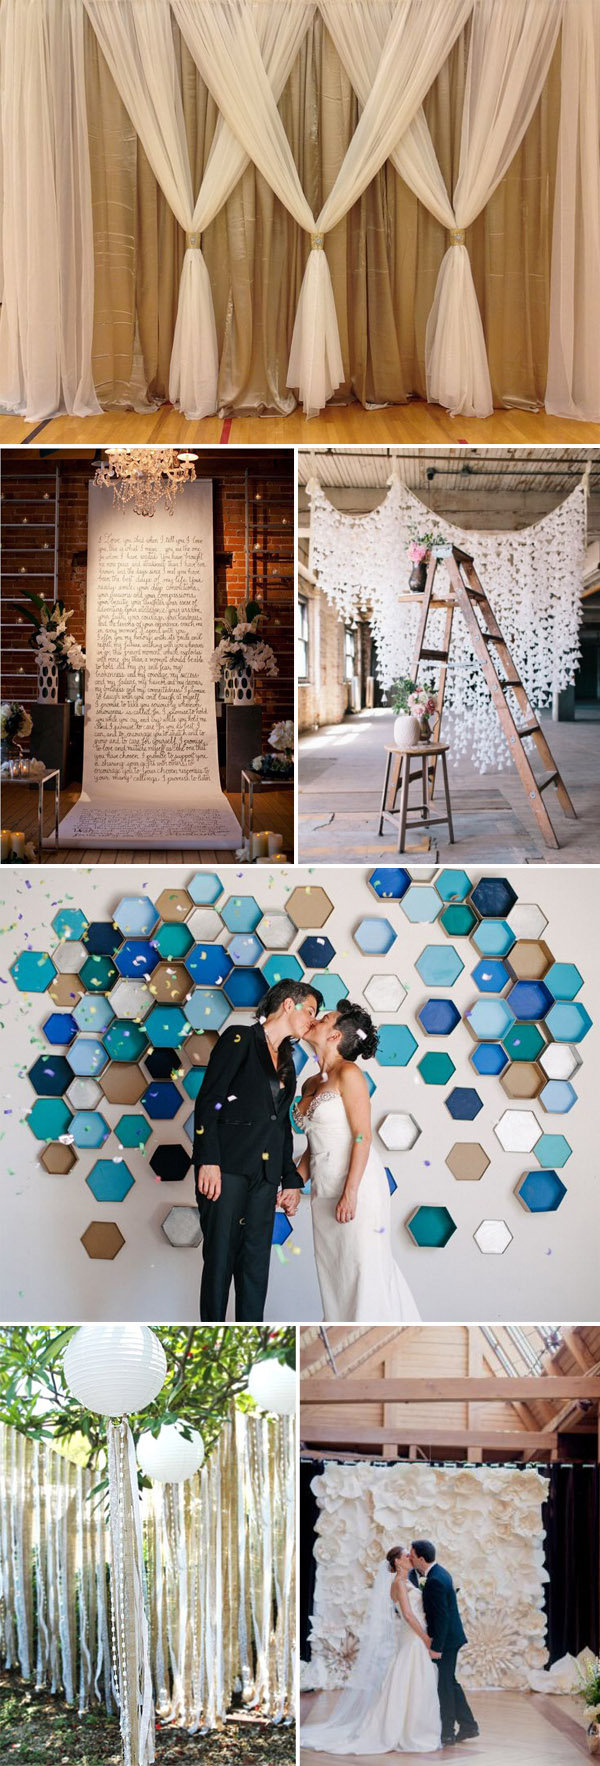 Diy Wedding Backdrop Top 20 Unique Backdrops For Wedding Ceremony Ideas